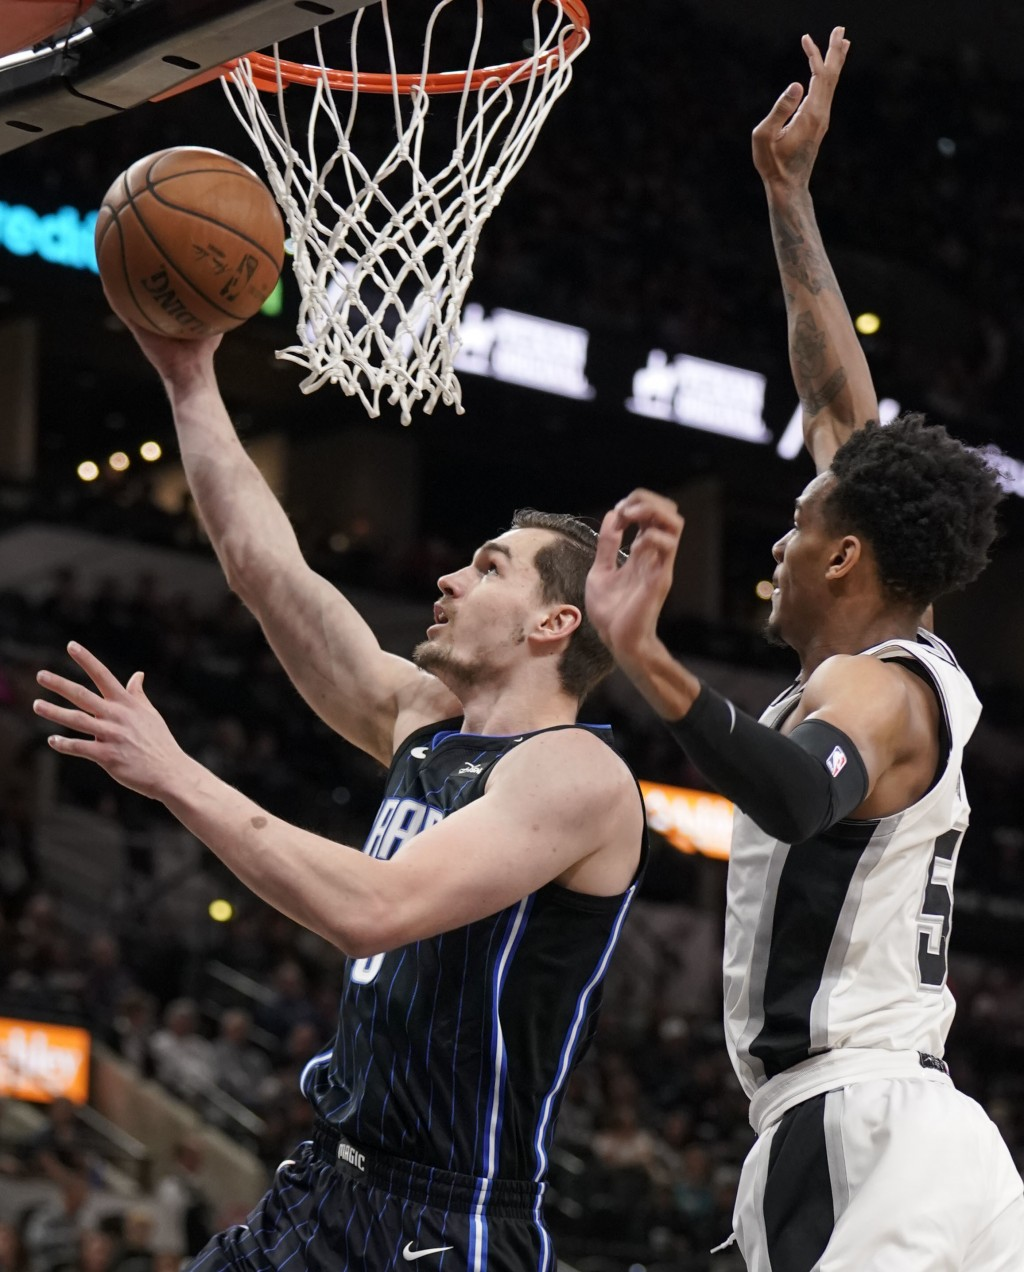 Orlando Magic's Mario Hezonja, left, shoots against San Antonio Spurs' Dejounte Murray during the first half of an NBA basketball game, Tuesday, March